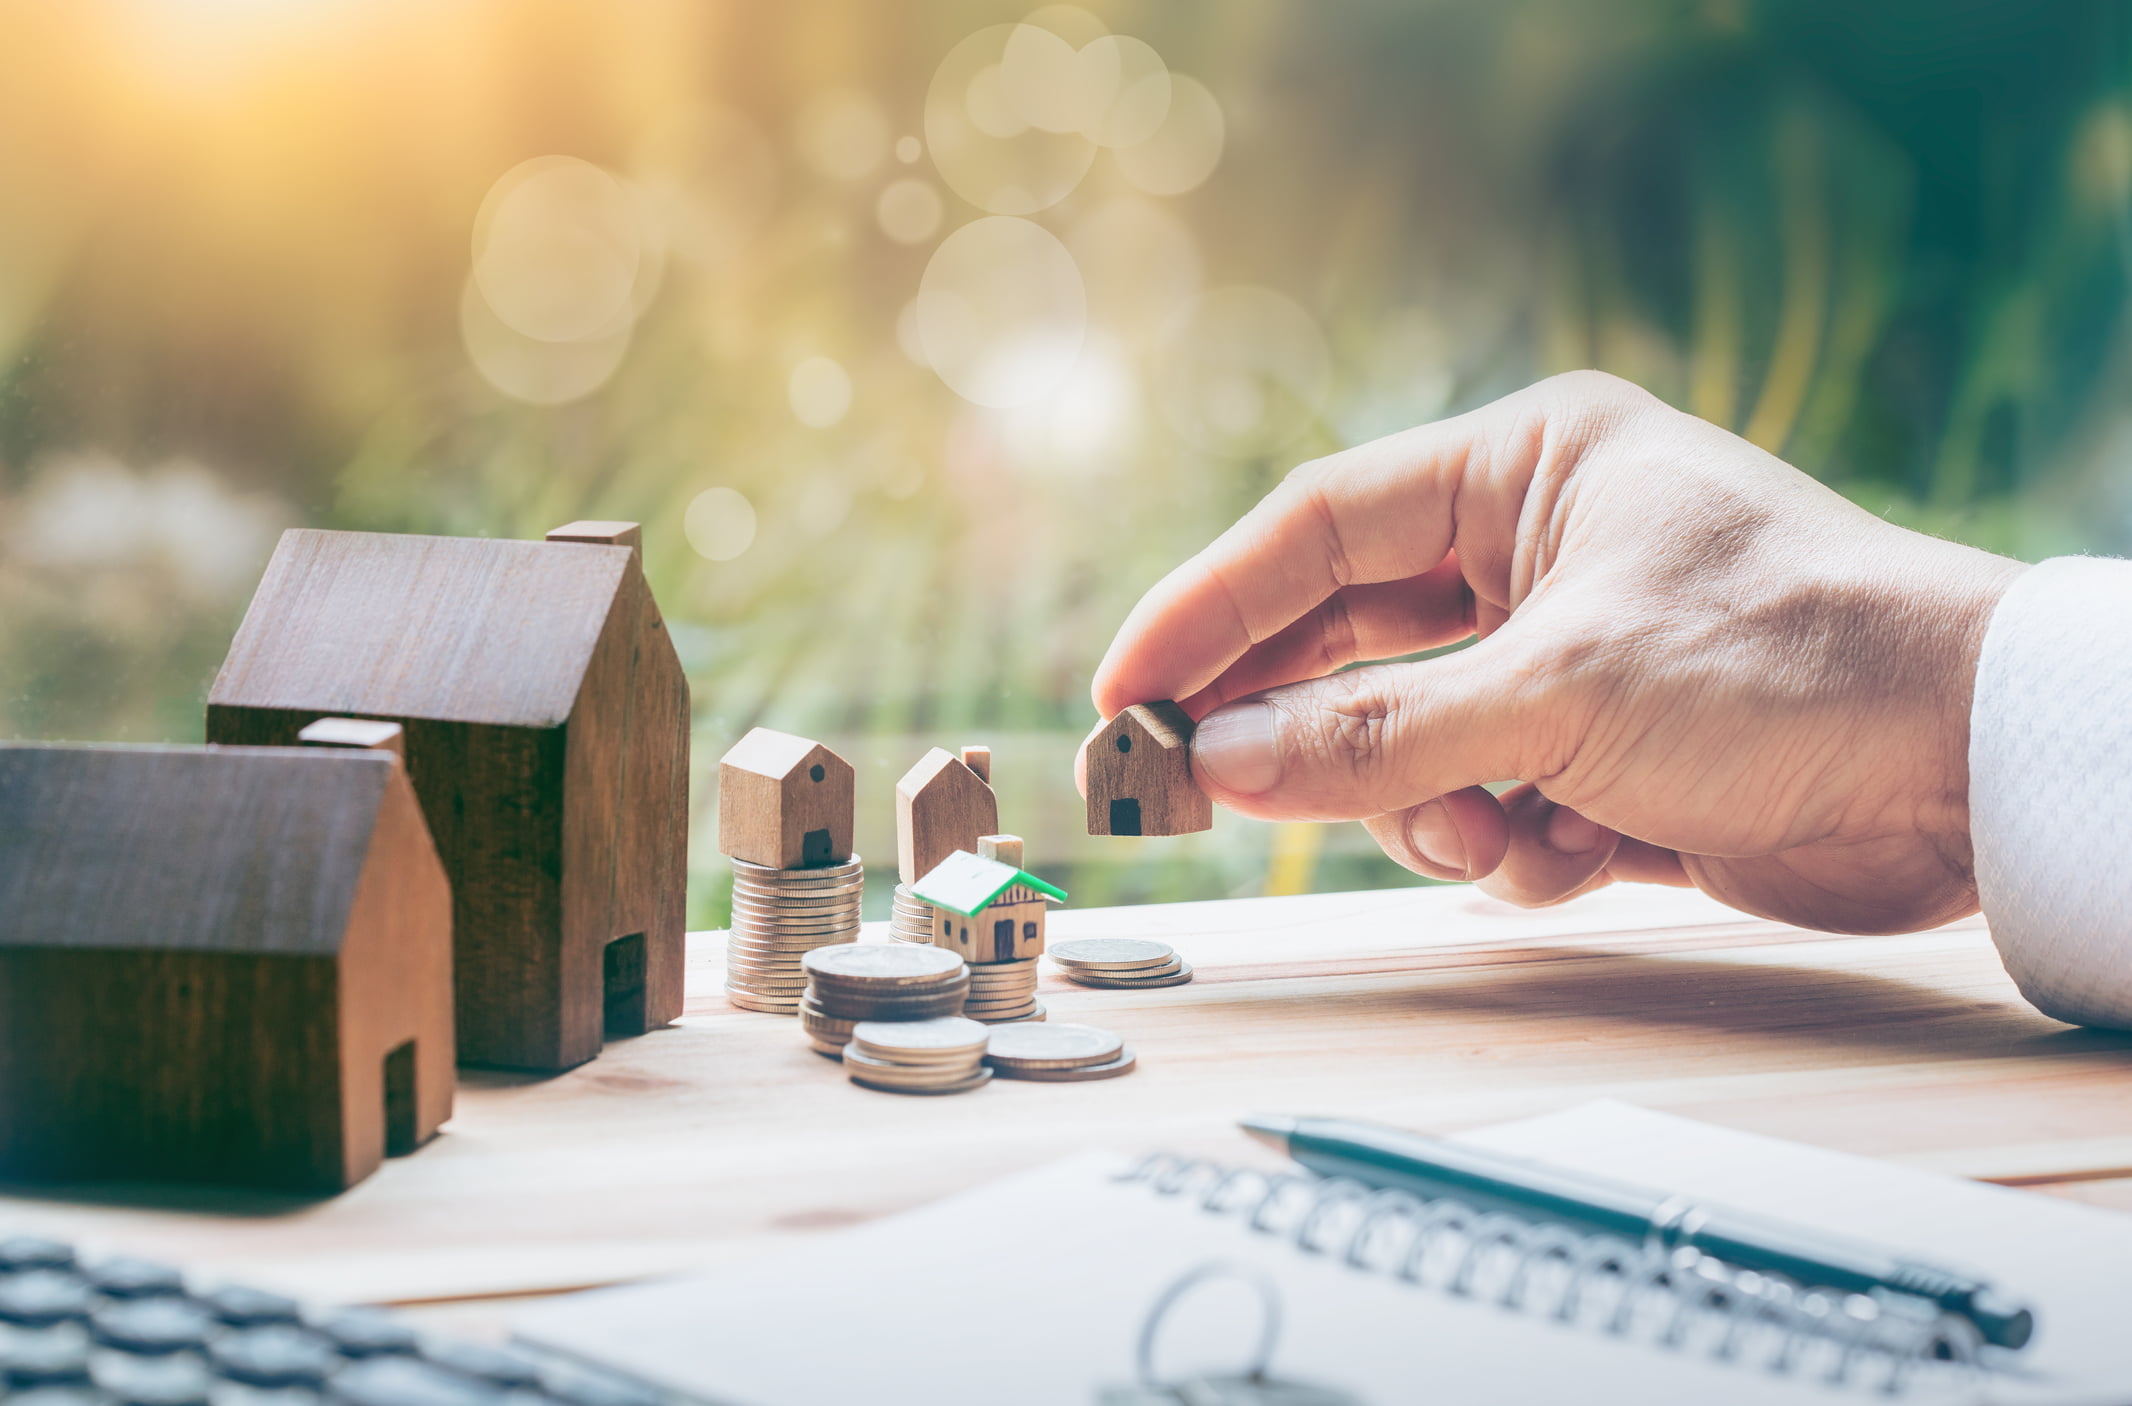 Calvert Home Mortgage | House placed on coins Men's hand is planning savings money of coins to buy a home concept concept for property ladder, mortgage and real estate investment. for saving or investment for a house,